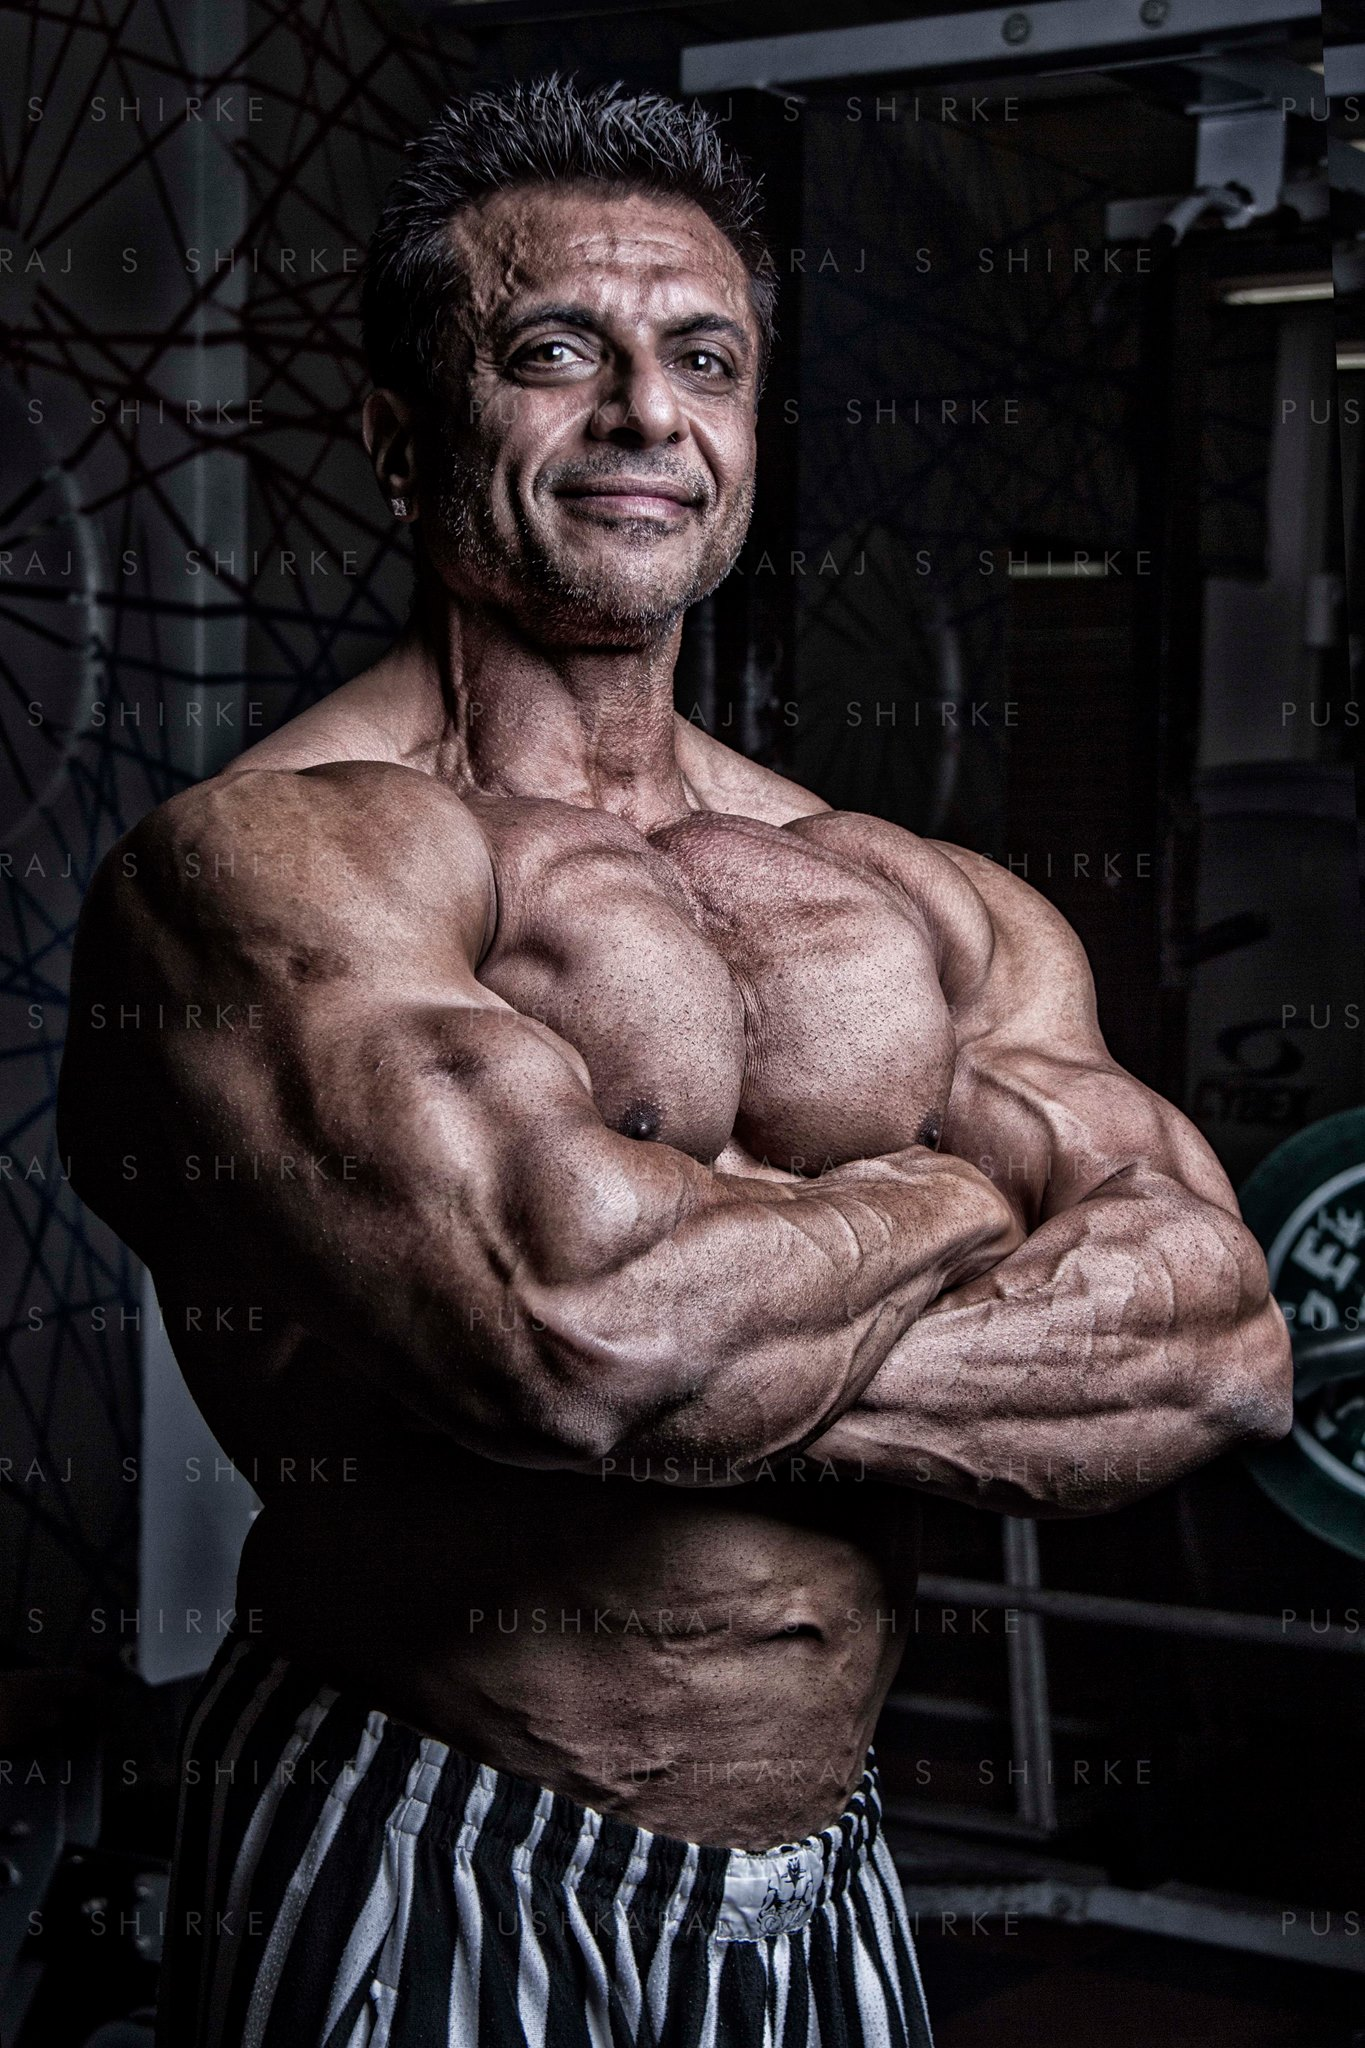 nizar-dawoodani-pushkaraj-s-shirke-fitness-photographer